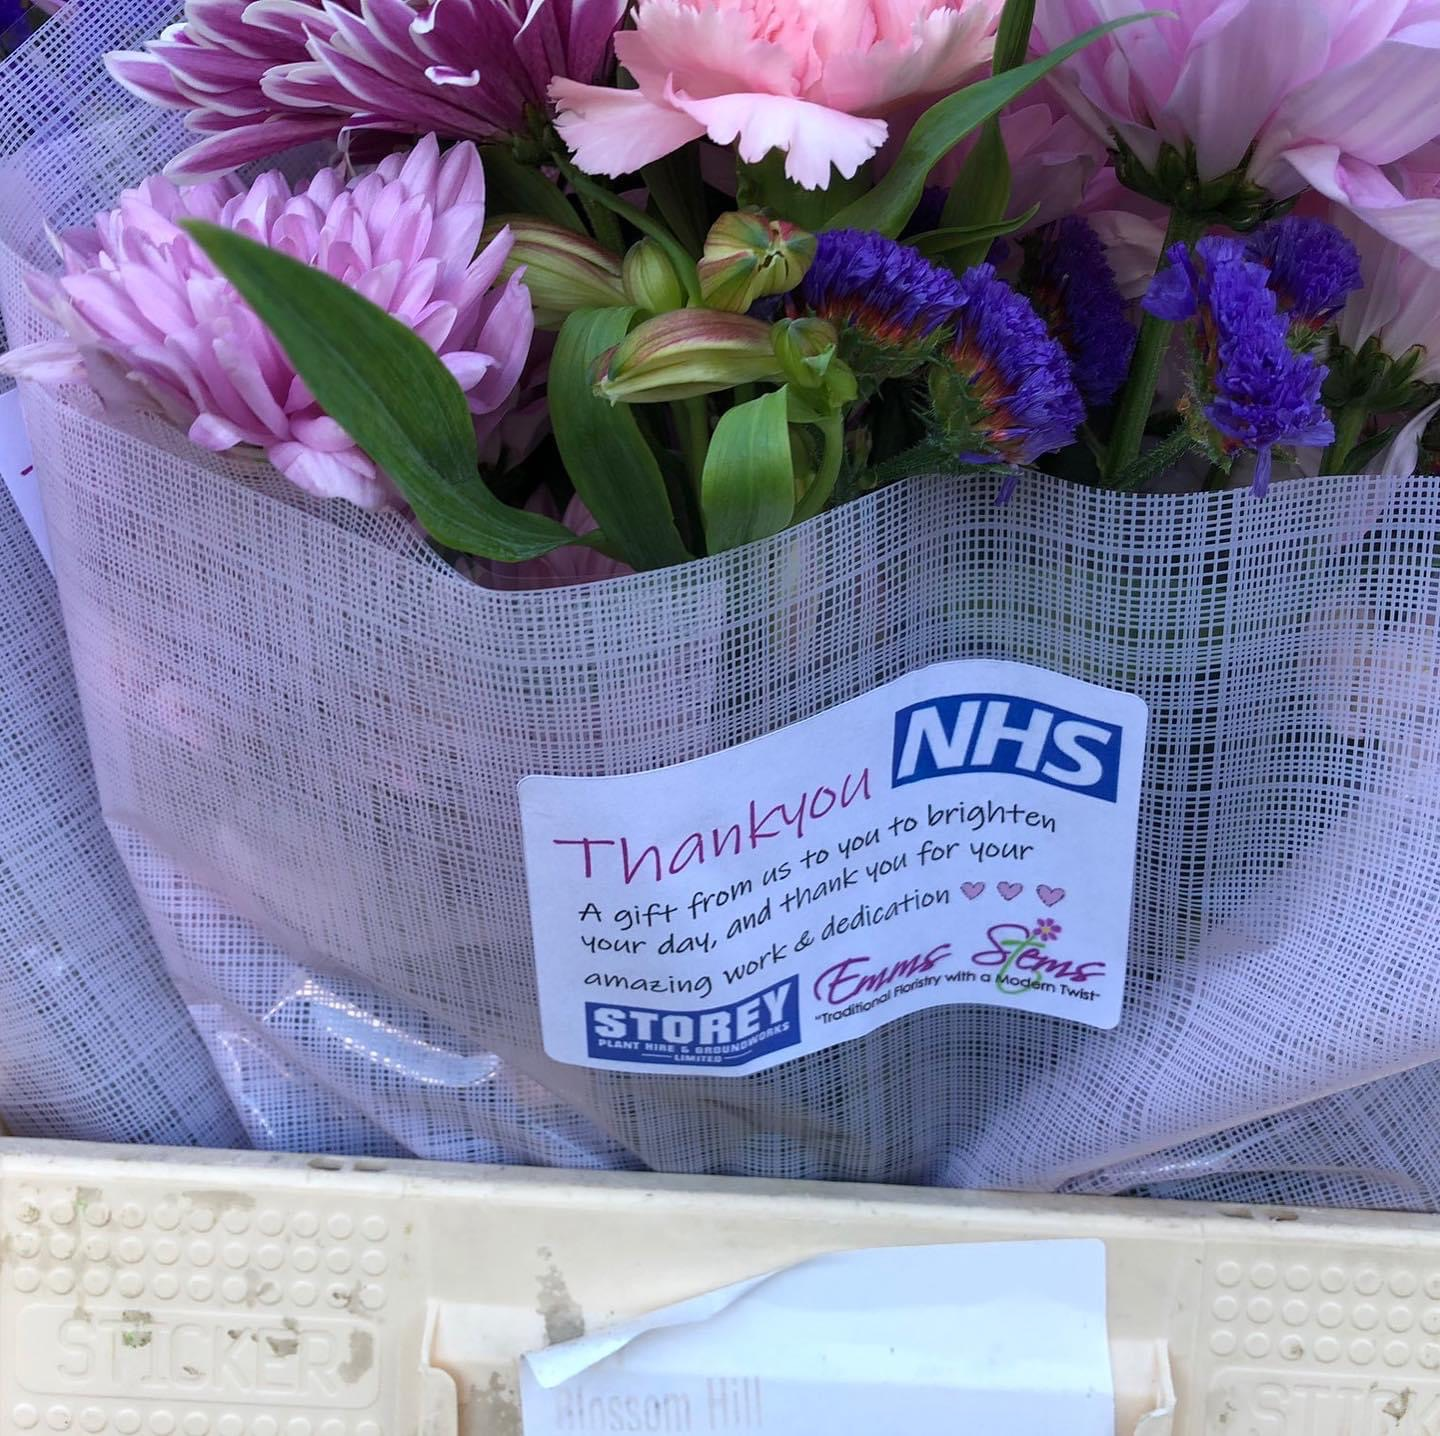 A huge thank you from NNUH